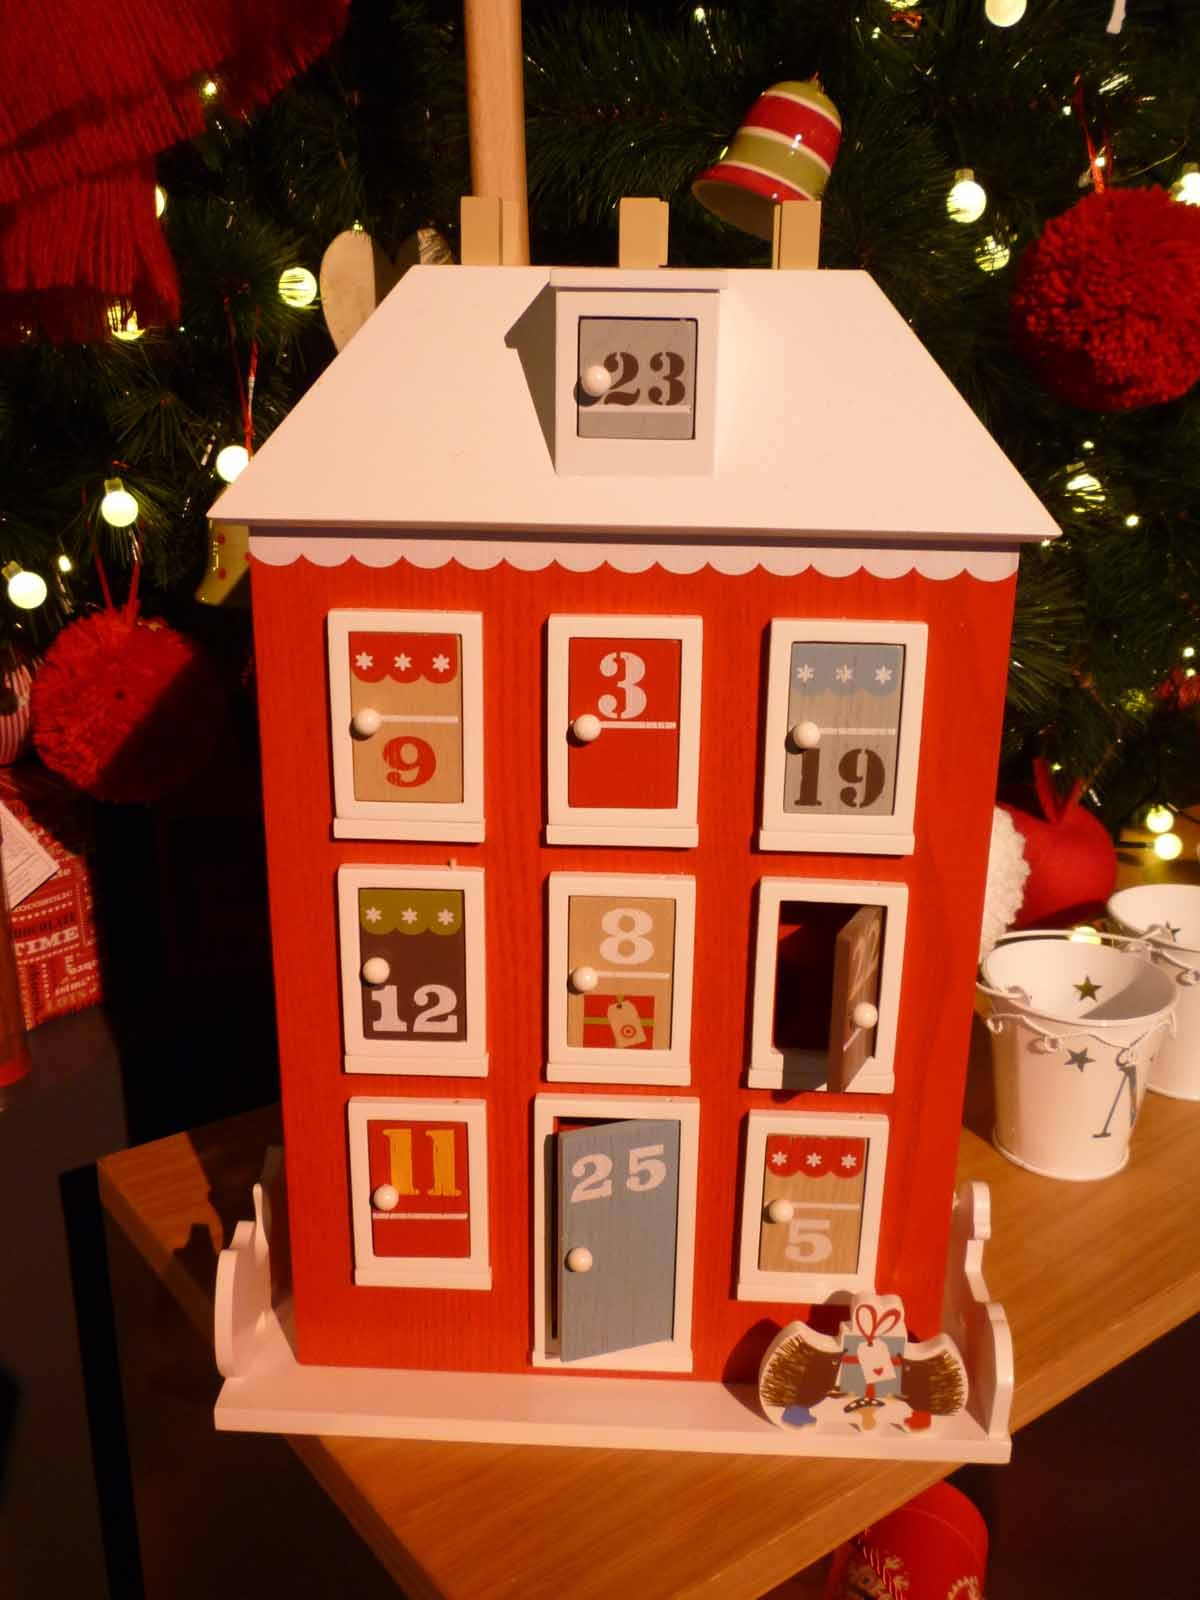 john-lewis-hits-all-the-right-buttons-with-its-retro-and-nostalgia-themed-christmas-show_24505